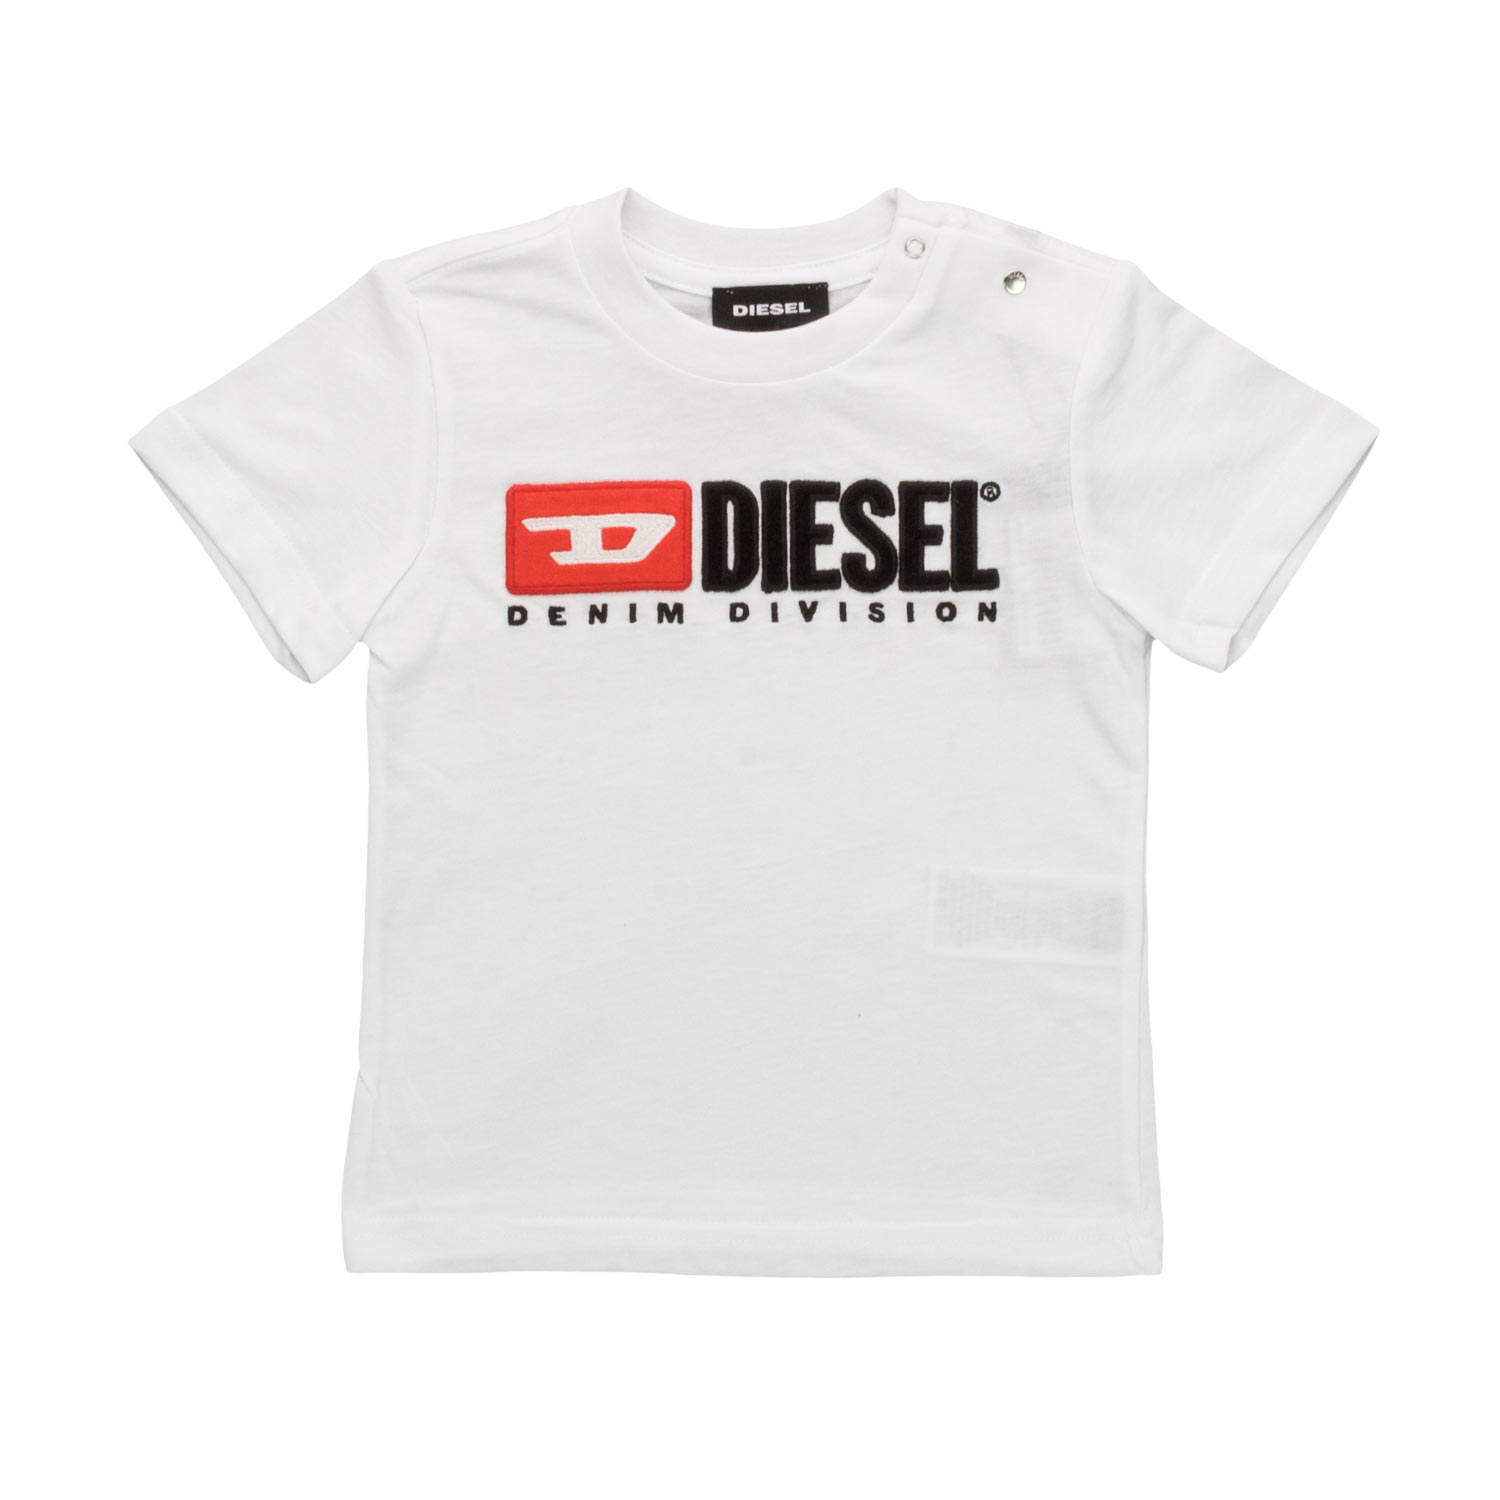 b58285470 Diesel - Baby White T-Shirt With Logo - annameglio.com shop online